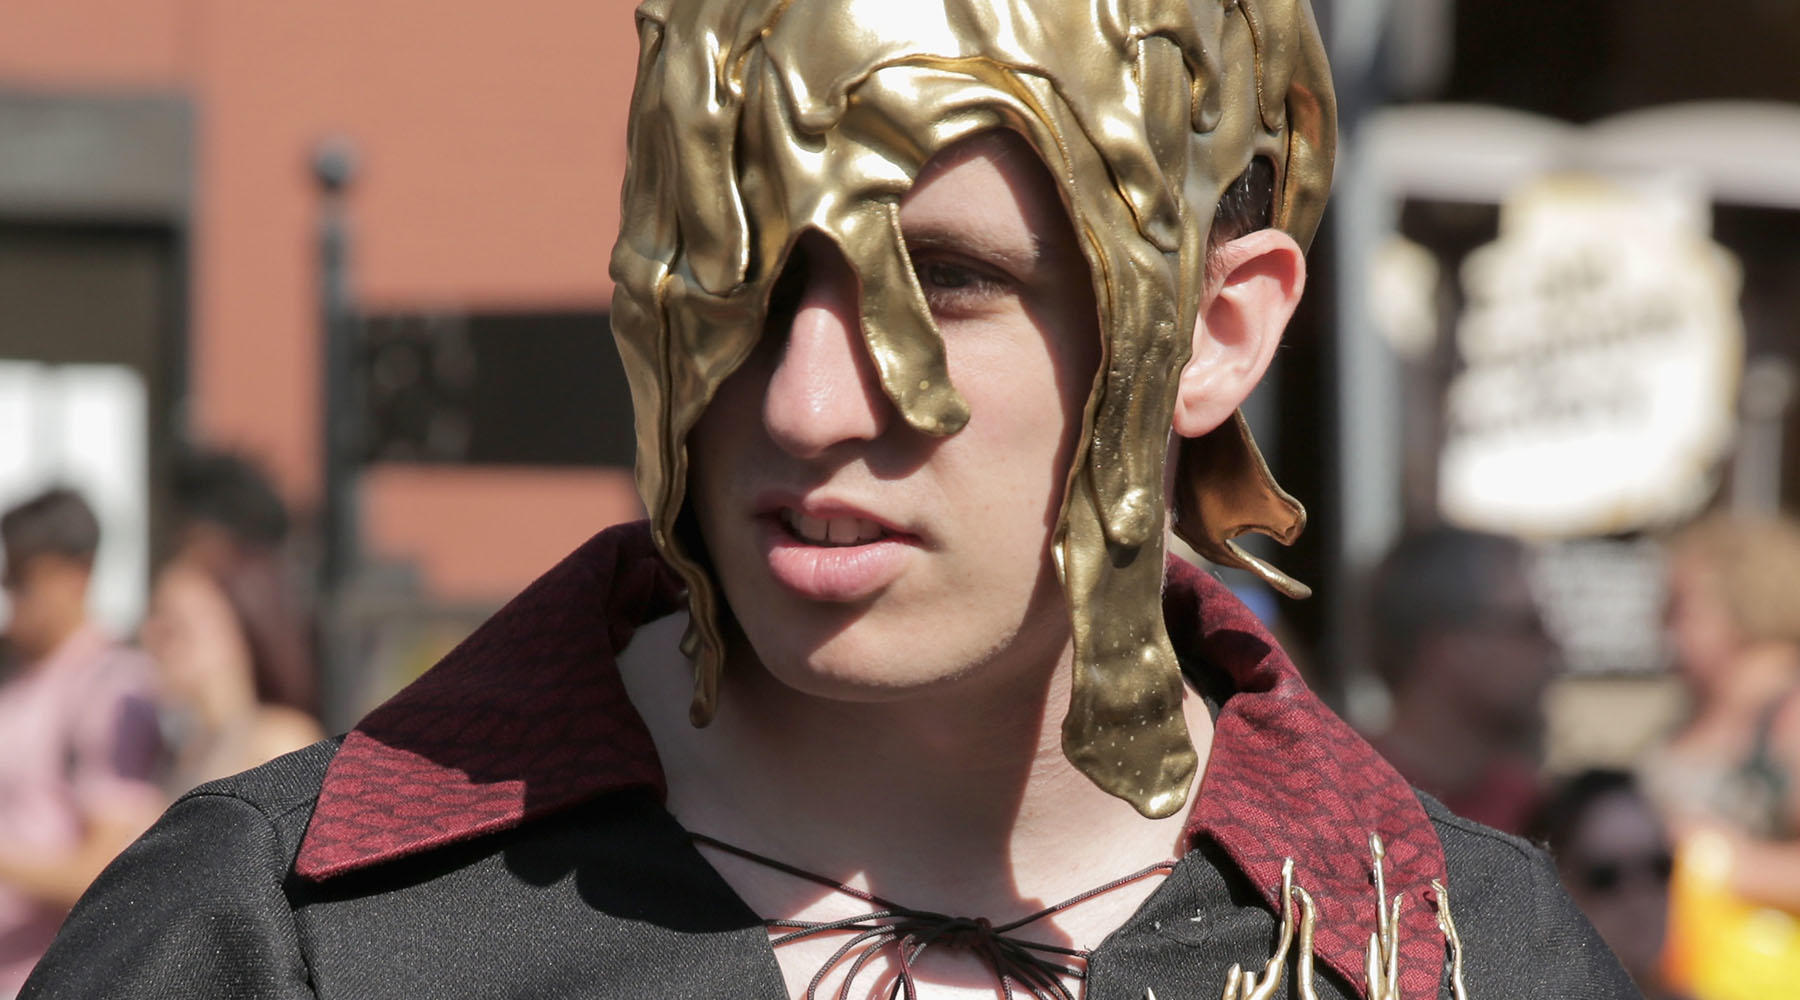 This Season 1 Beggar King cosplay that's pure gold